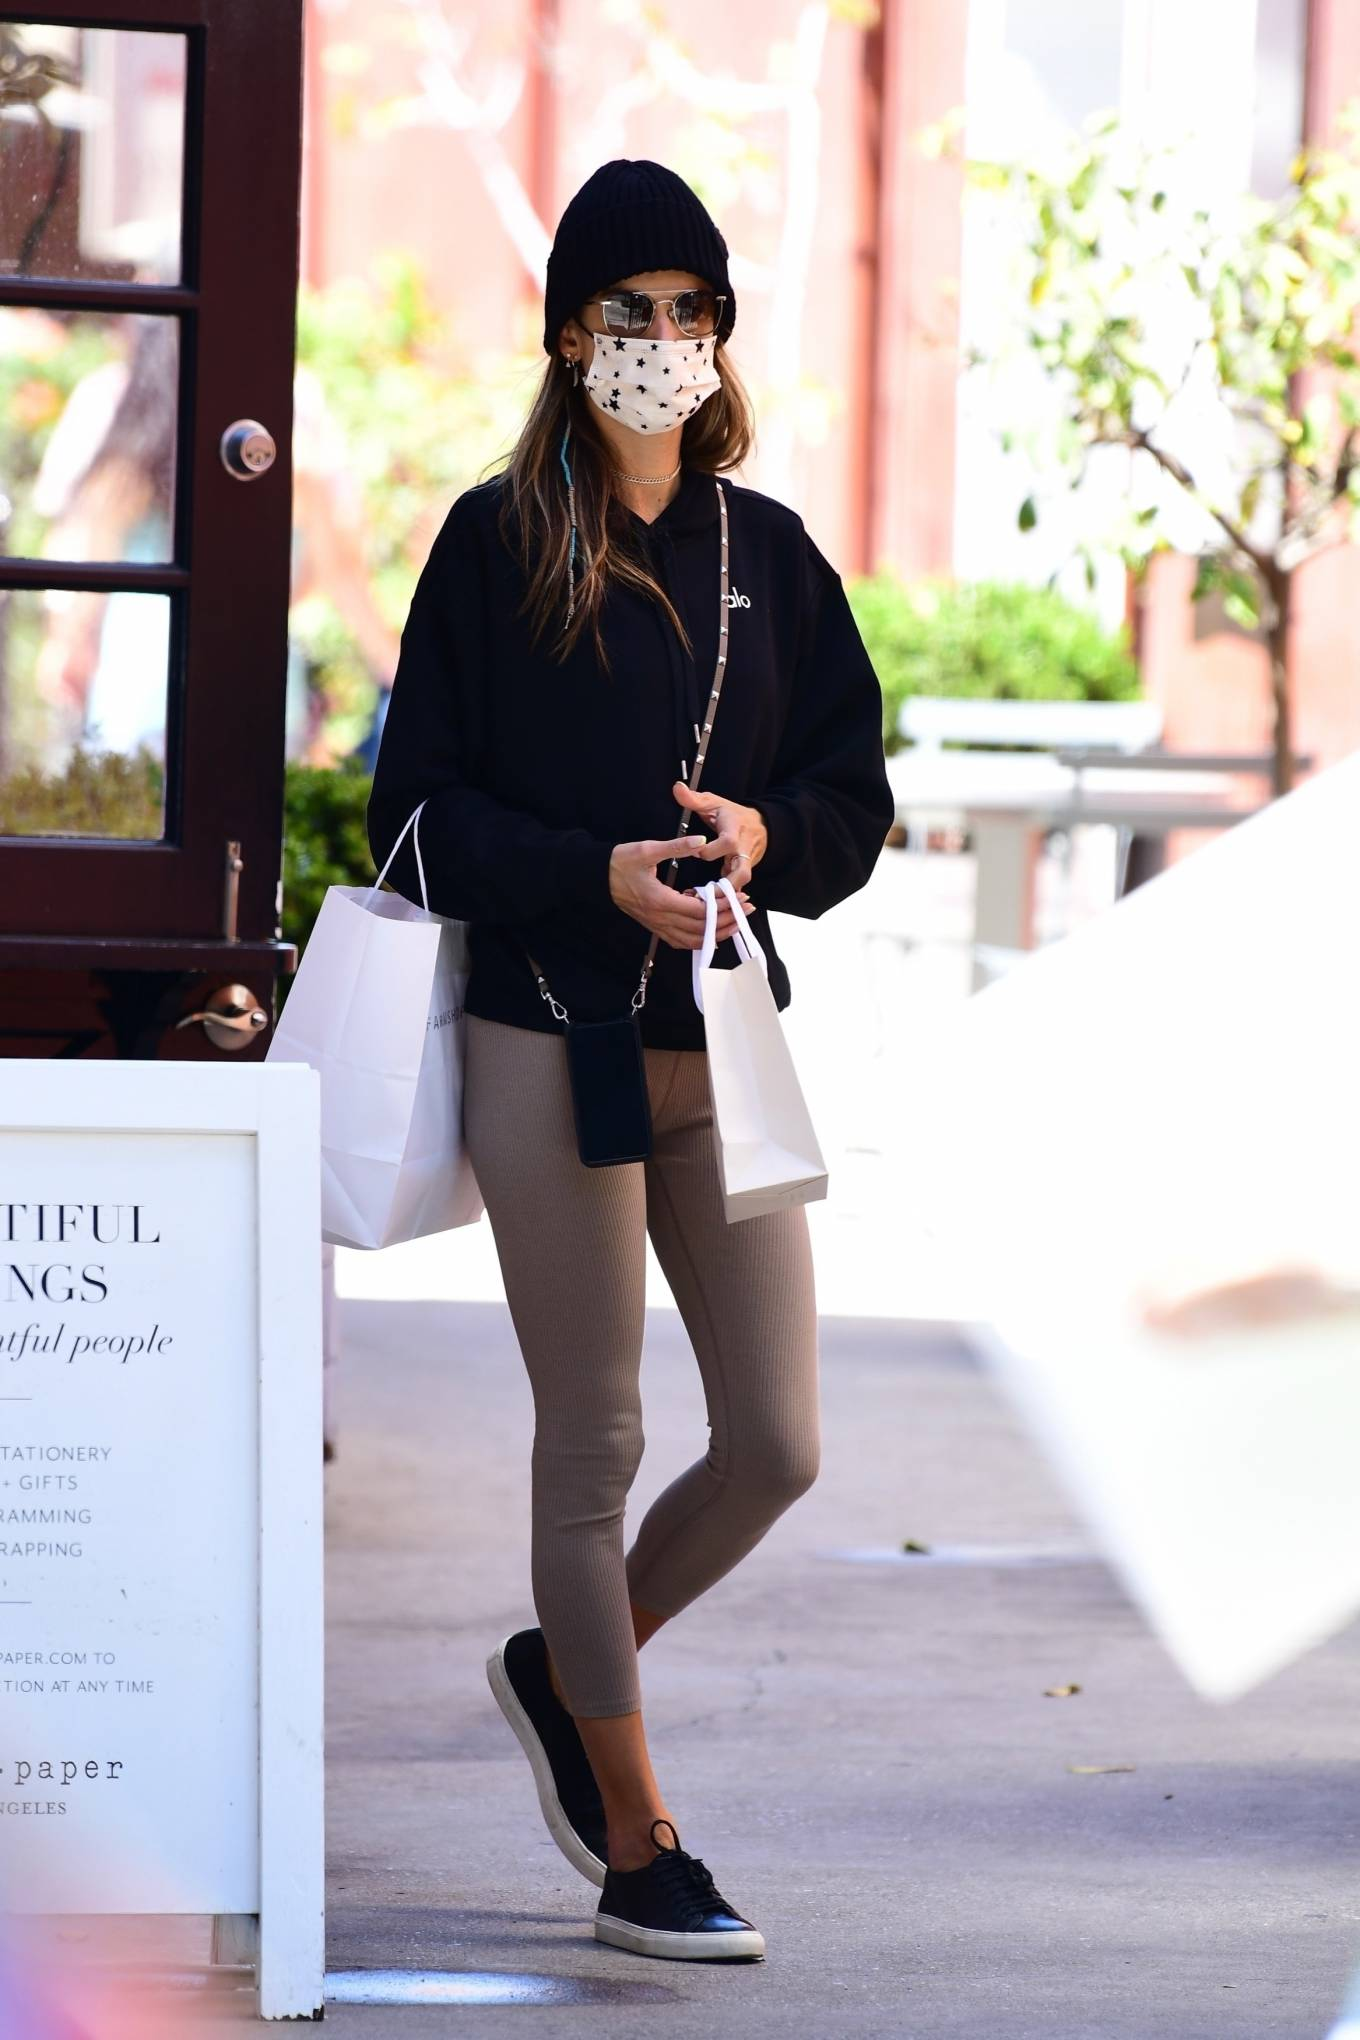 Alessandra Ambrosio wearing round black white lace-up sneakers by Common Projects with flat heel